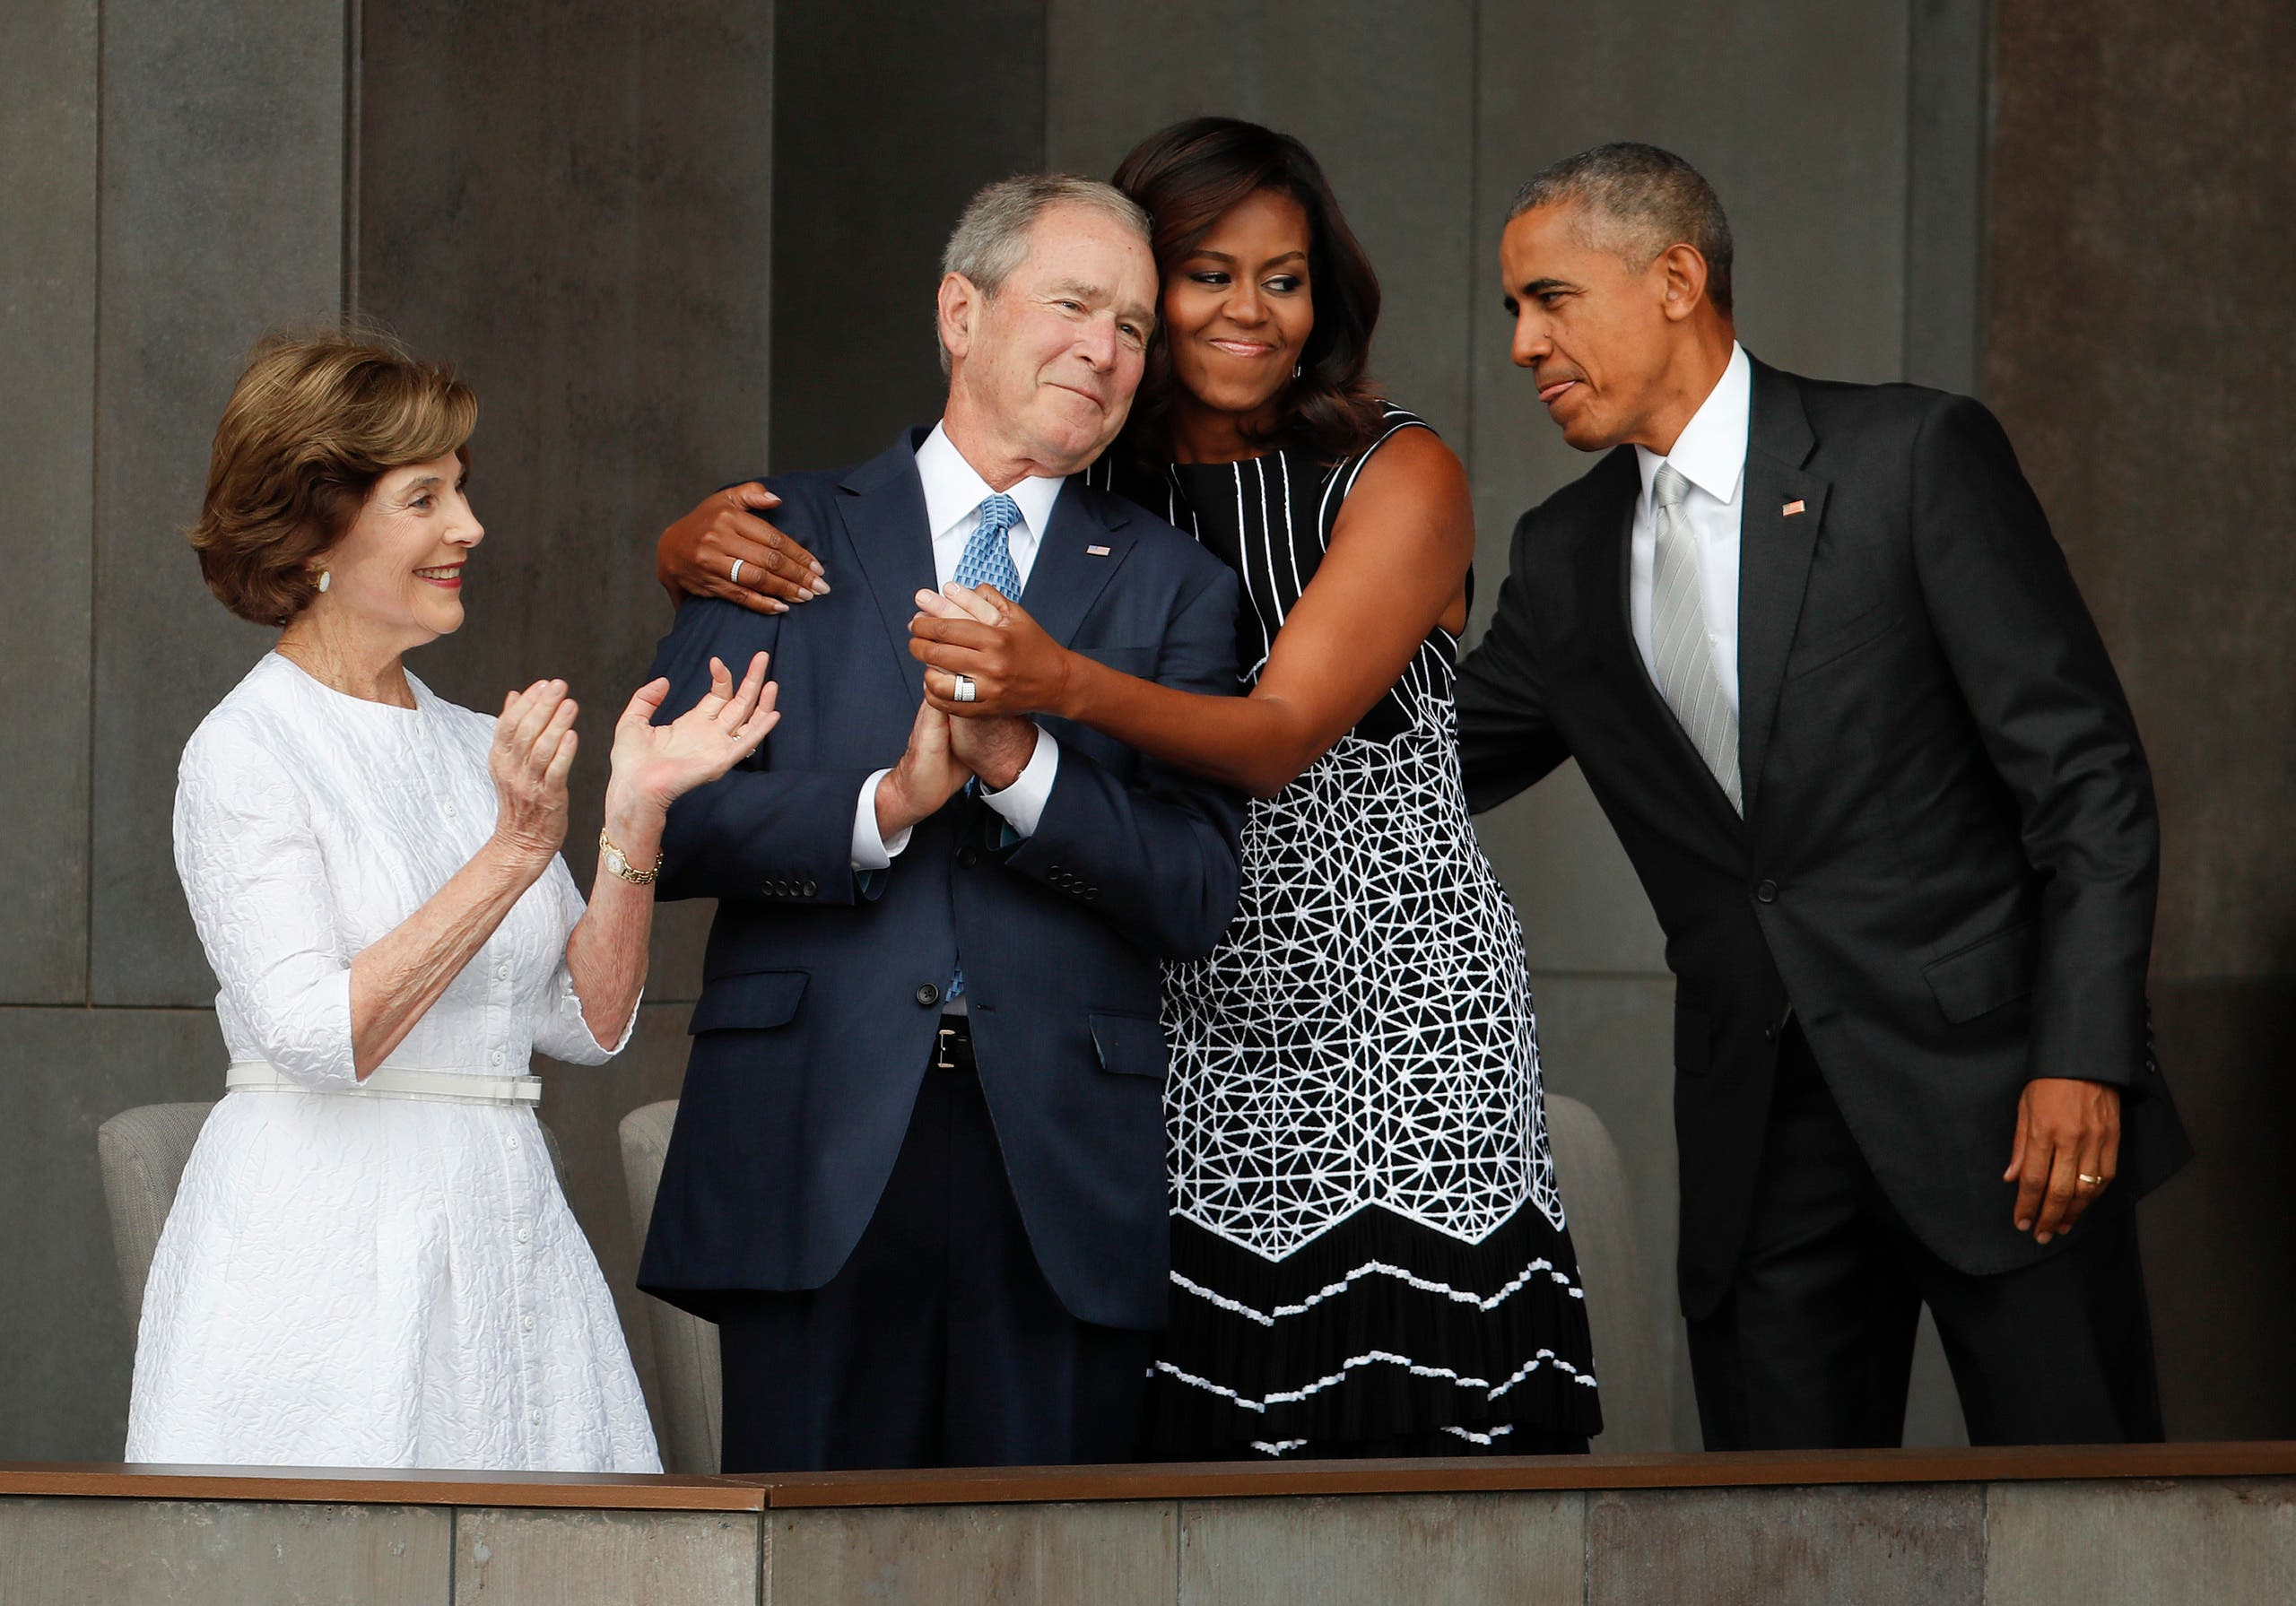 First lady Michelle Obama, center, hugs former President George W. Bush, as President Barack Obama and former first lady Laura Bush walk on stage at the dedication ceremony of the Smithsonian Museum of African American History and Culture on the National Mall in Washington, Saturday, Sept. 24, 2016. (AP)